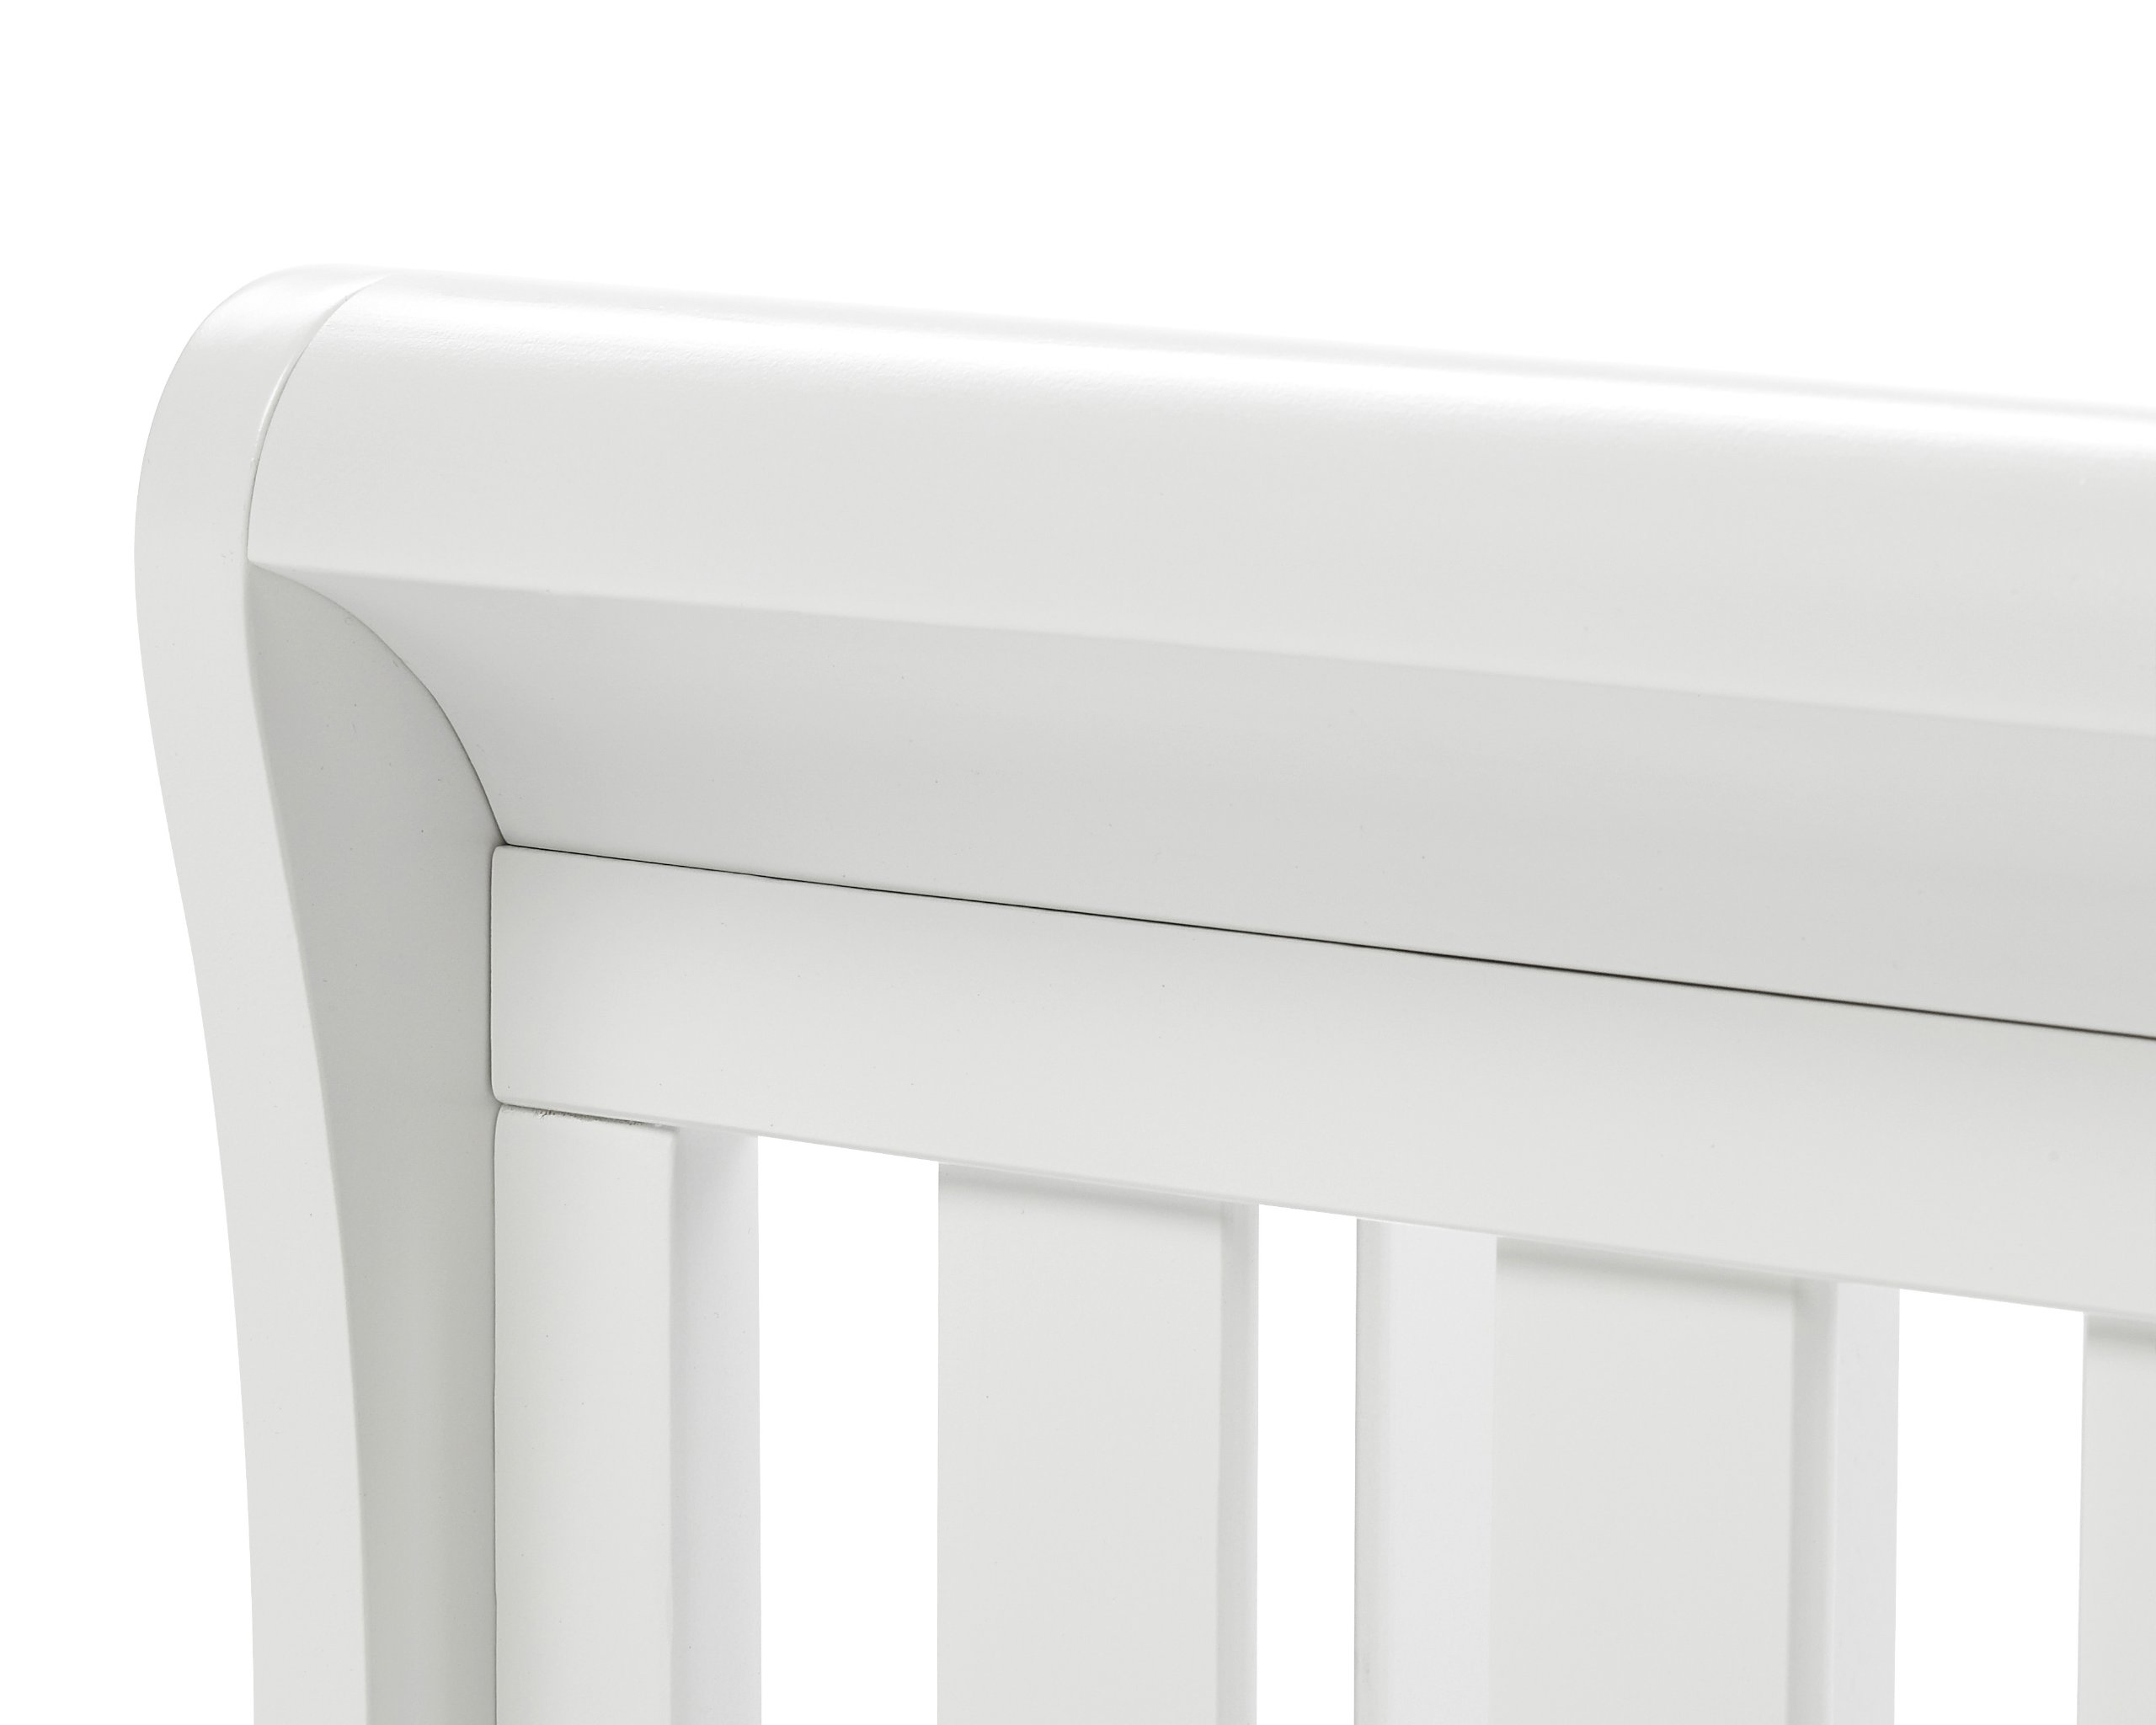 Babymore Eva Sleigh Cot Bed Dropside with Drawer (White Finish) + FOAM MATTRESS  Easily convert to junior bed/sofa/day bed, Meet British and European safety standards; Single handed drop side mechanism allow easy access to your baby Protective Teething rail on top of both sides. Full drawer on runner provide extra storage 9